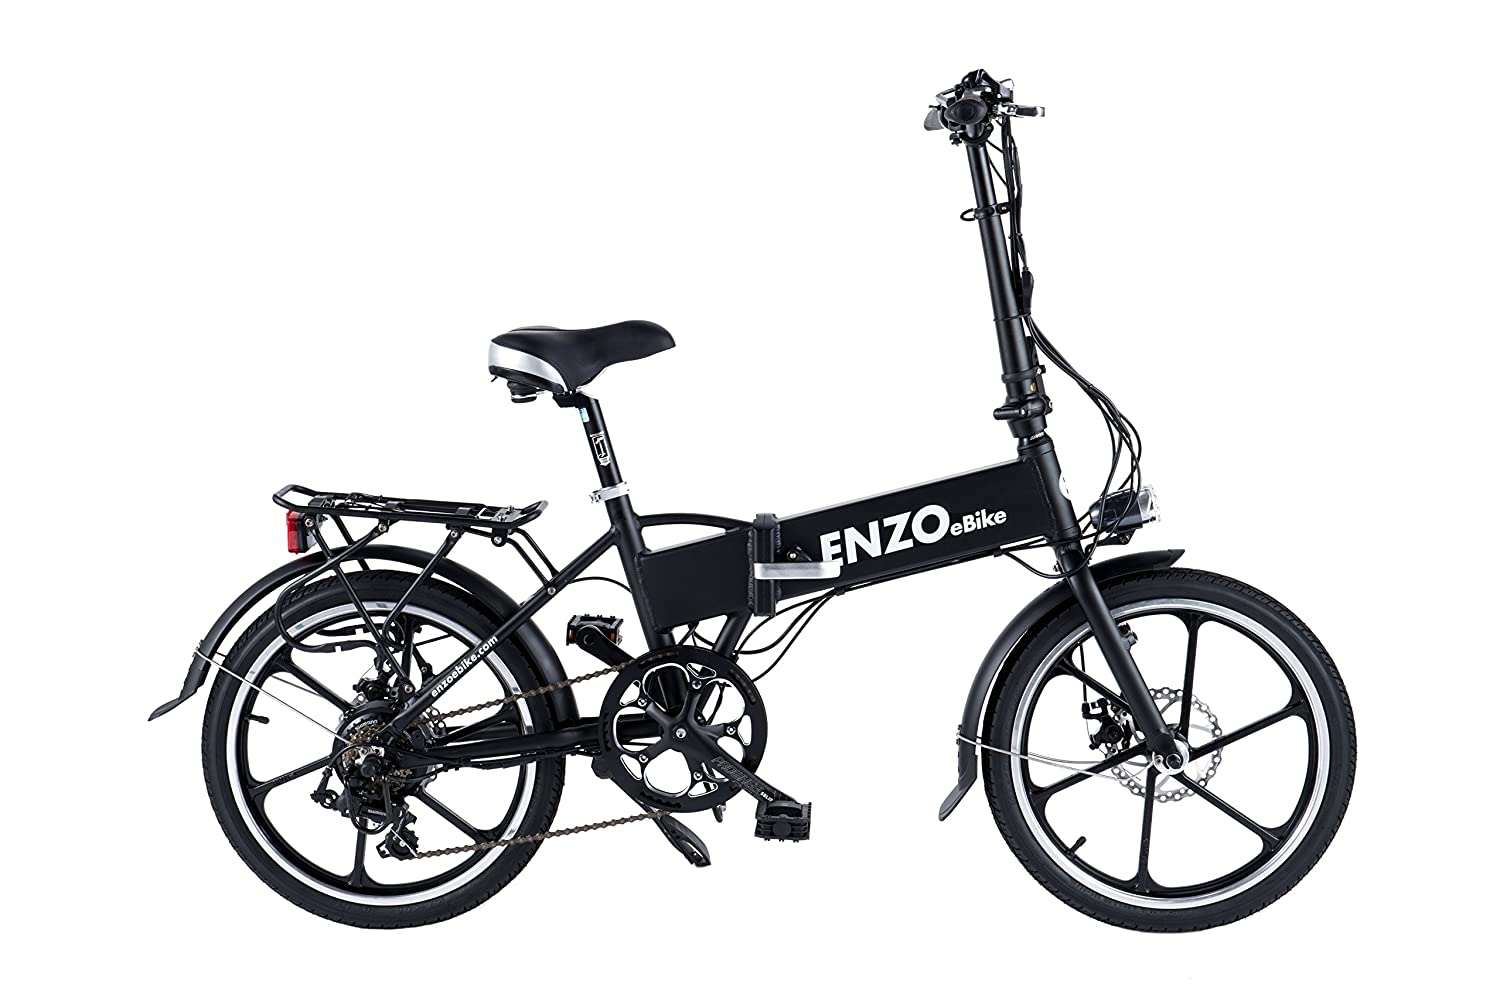 Enzo eBikes Electric folding Aluminum Bicycle Review